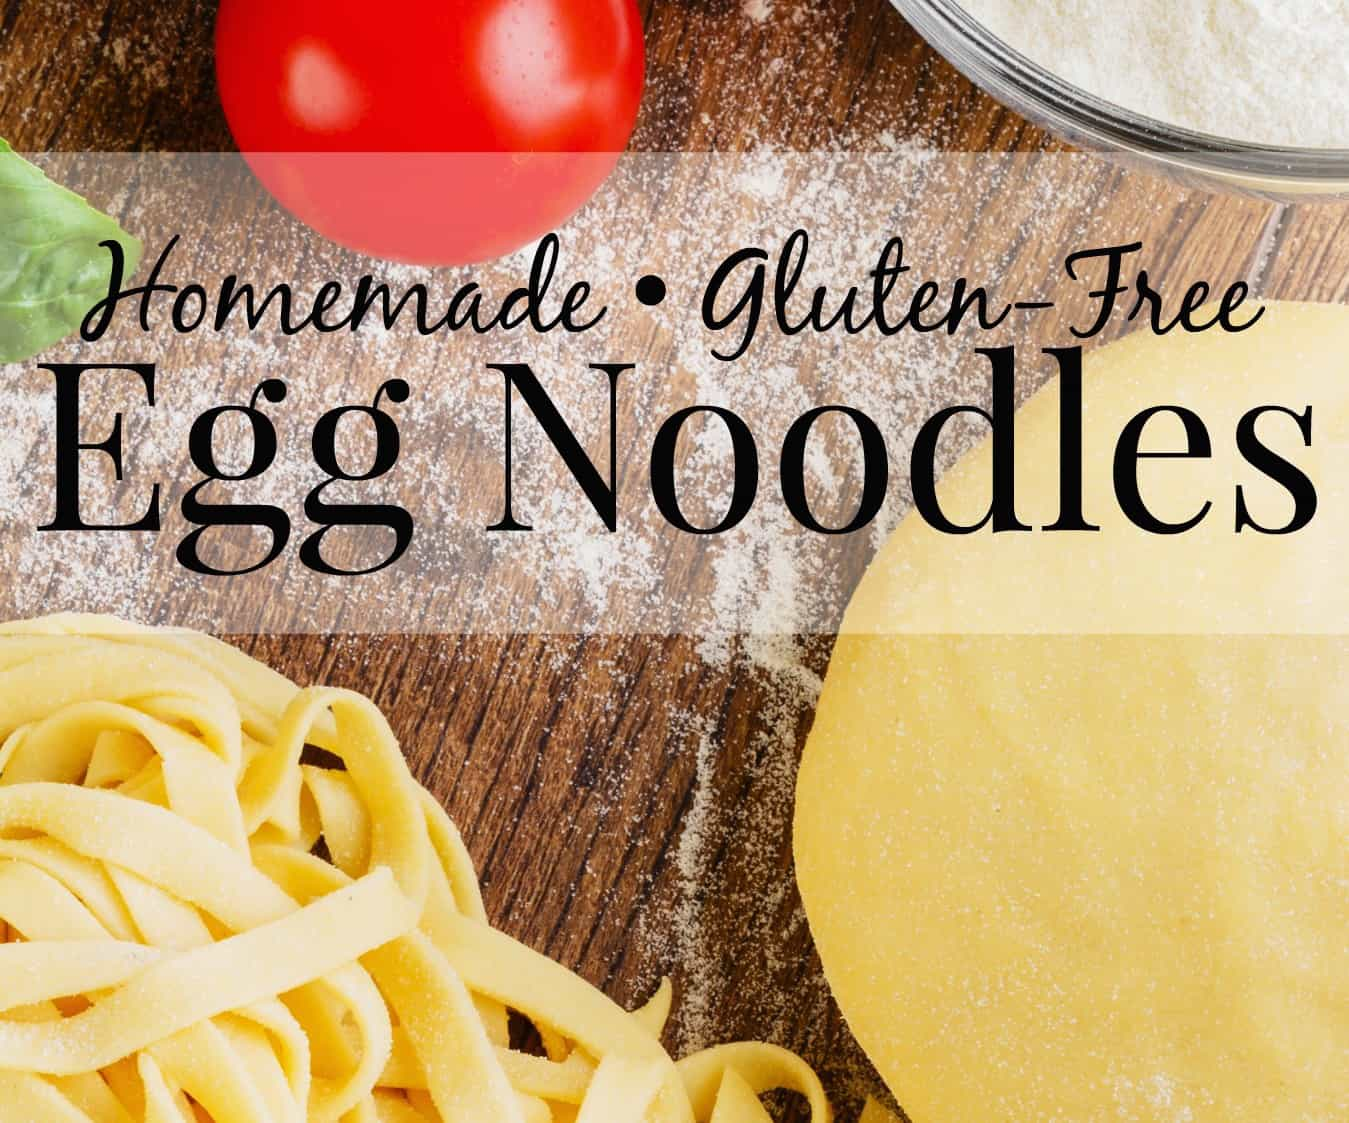 Gluten-Free Egg Noodles | The Frugal Farm Wife